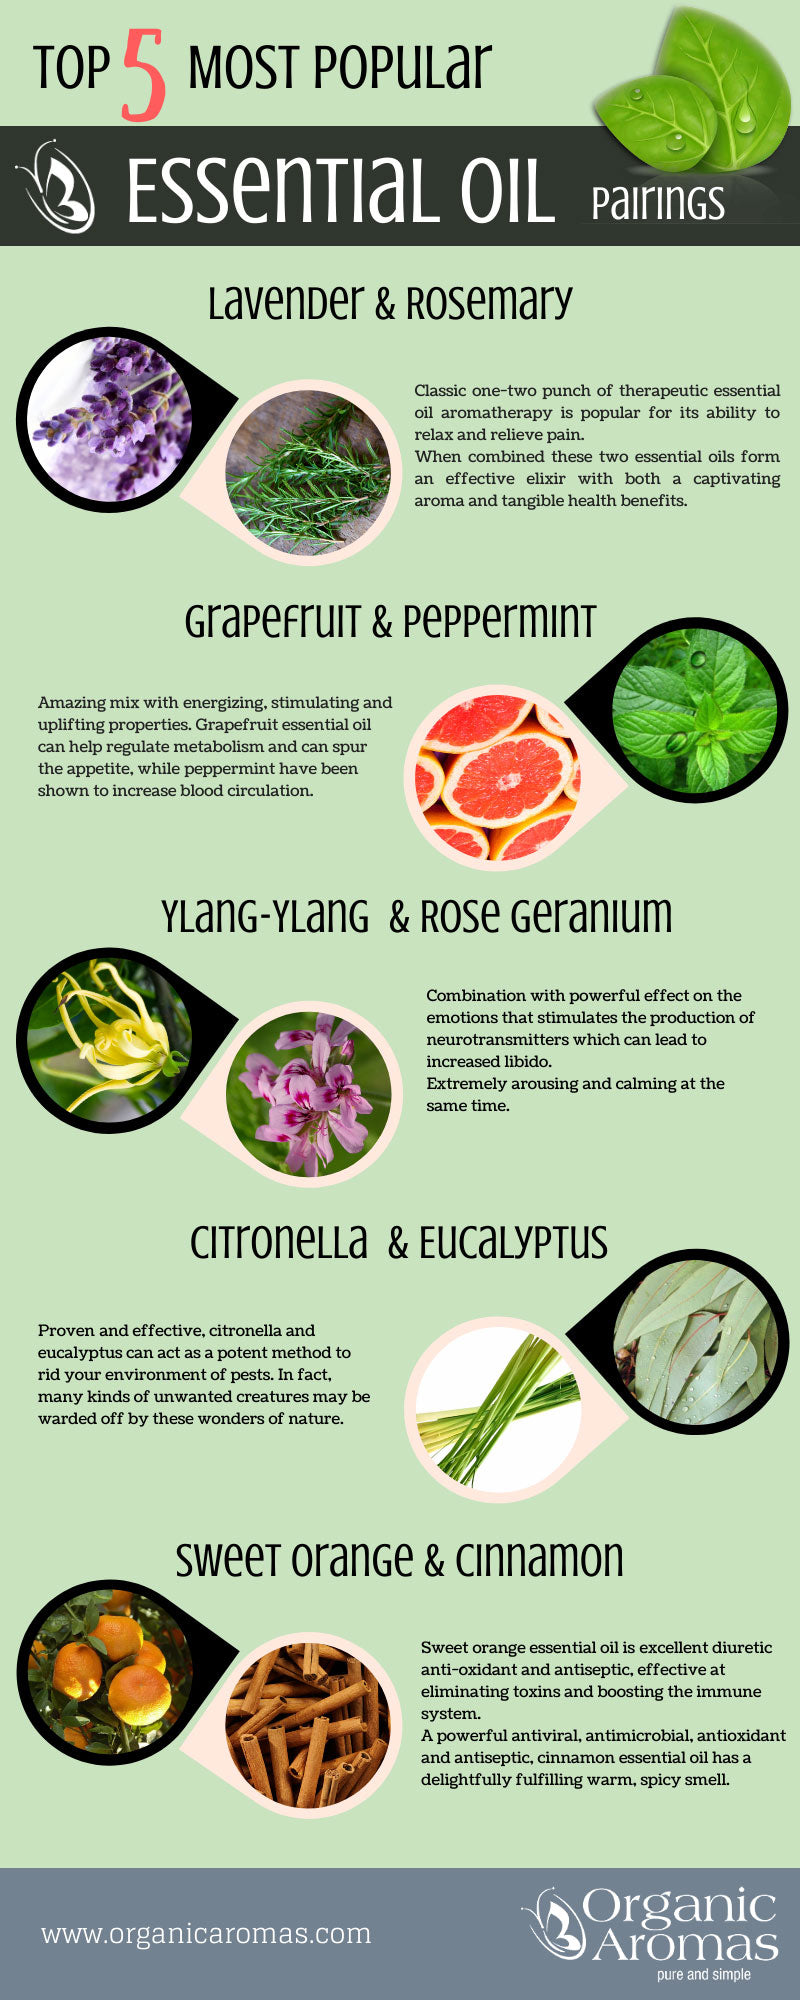 Top 5 Most Popular And Useful Essential Oil Pairings Organic Aromas